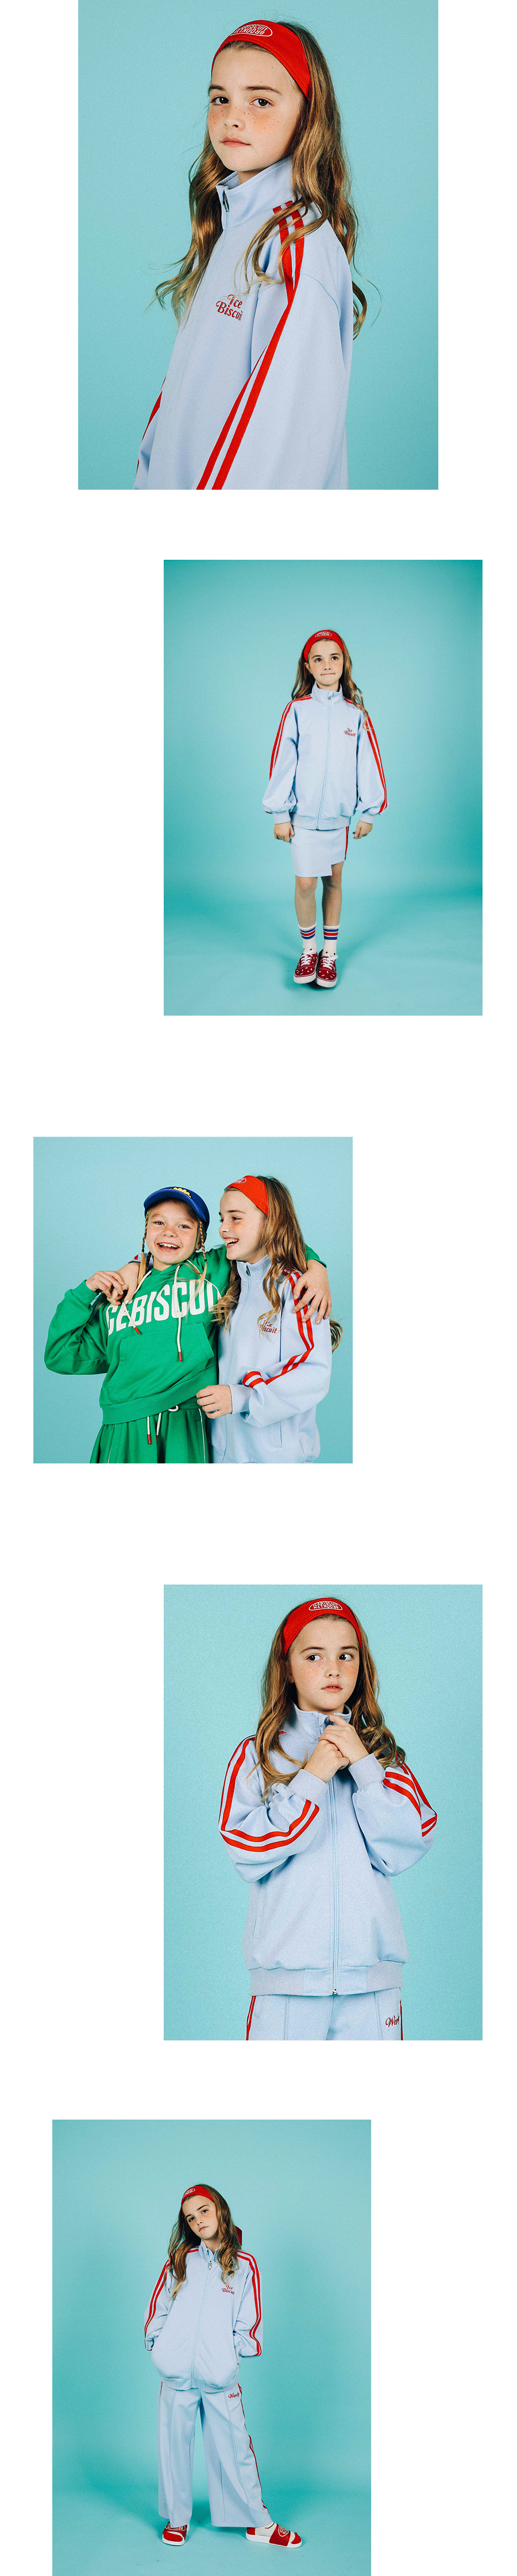 Icebiscuit high neck track jacket 상세 이미지